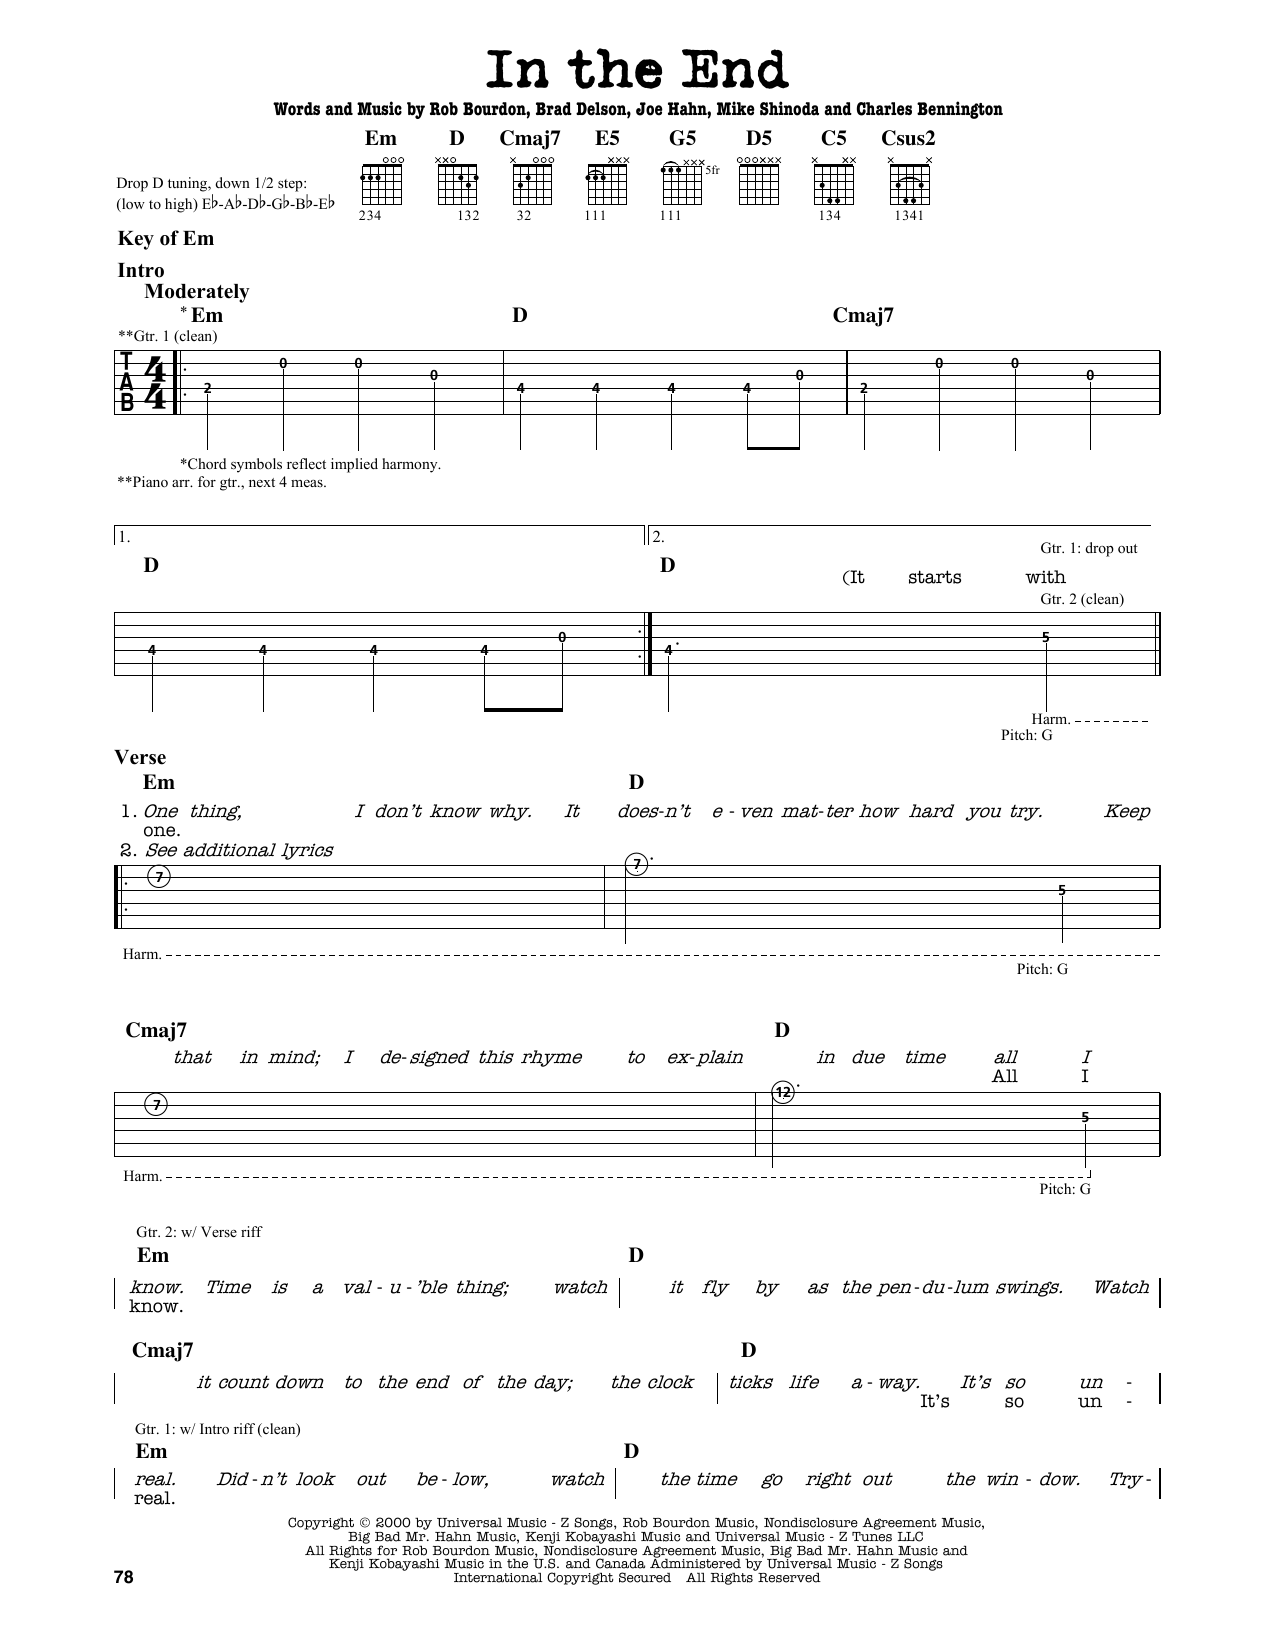 Leave out all the rest guitar chords